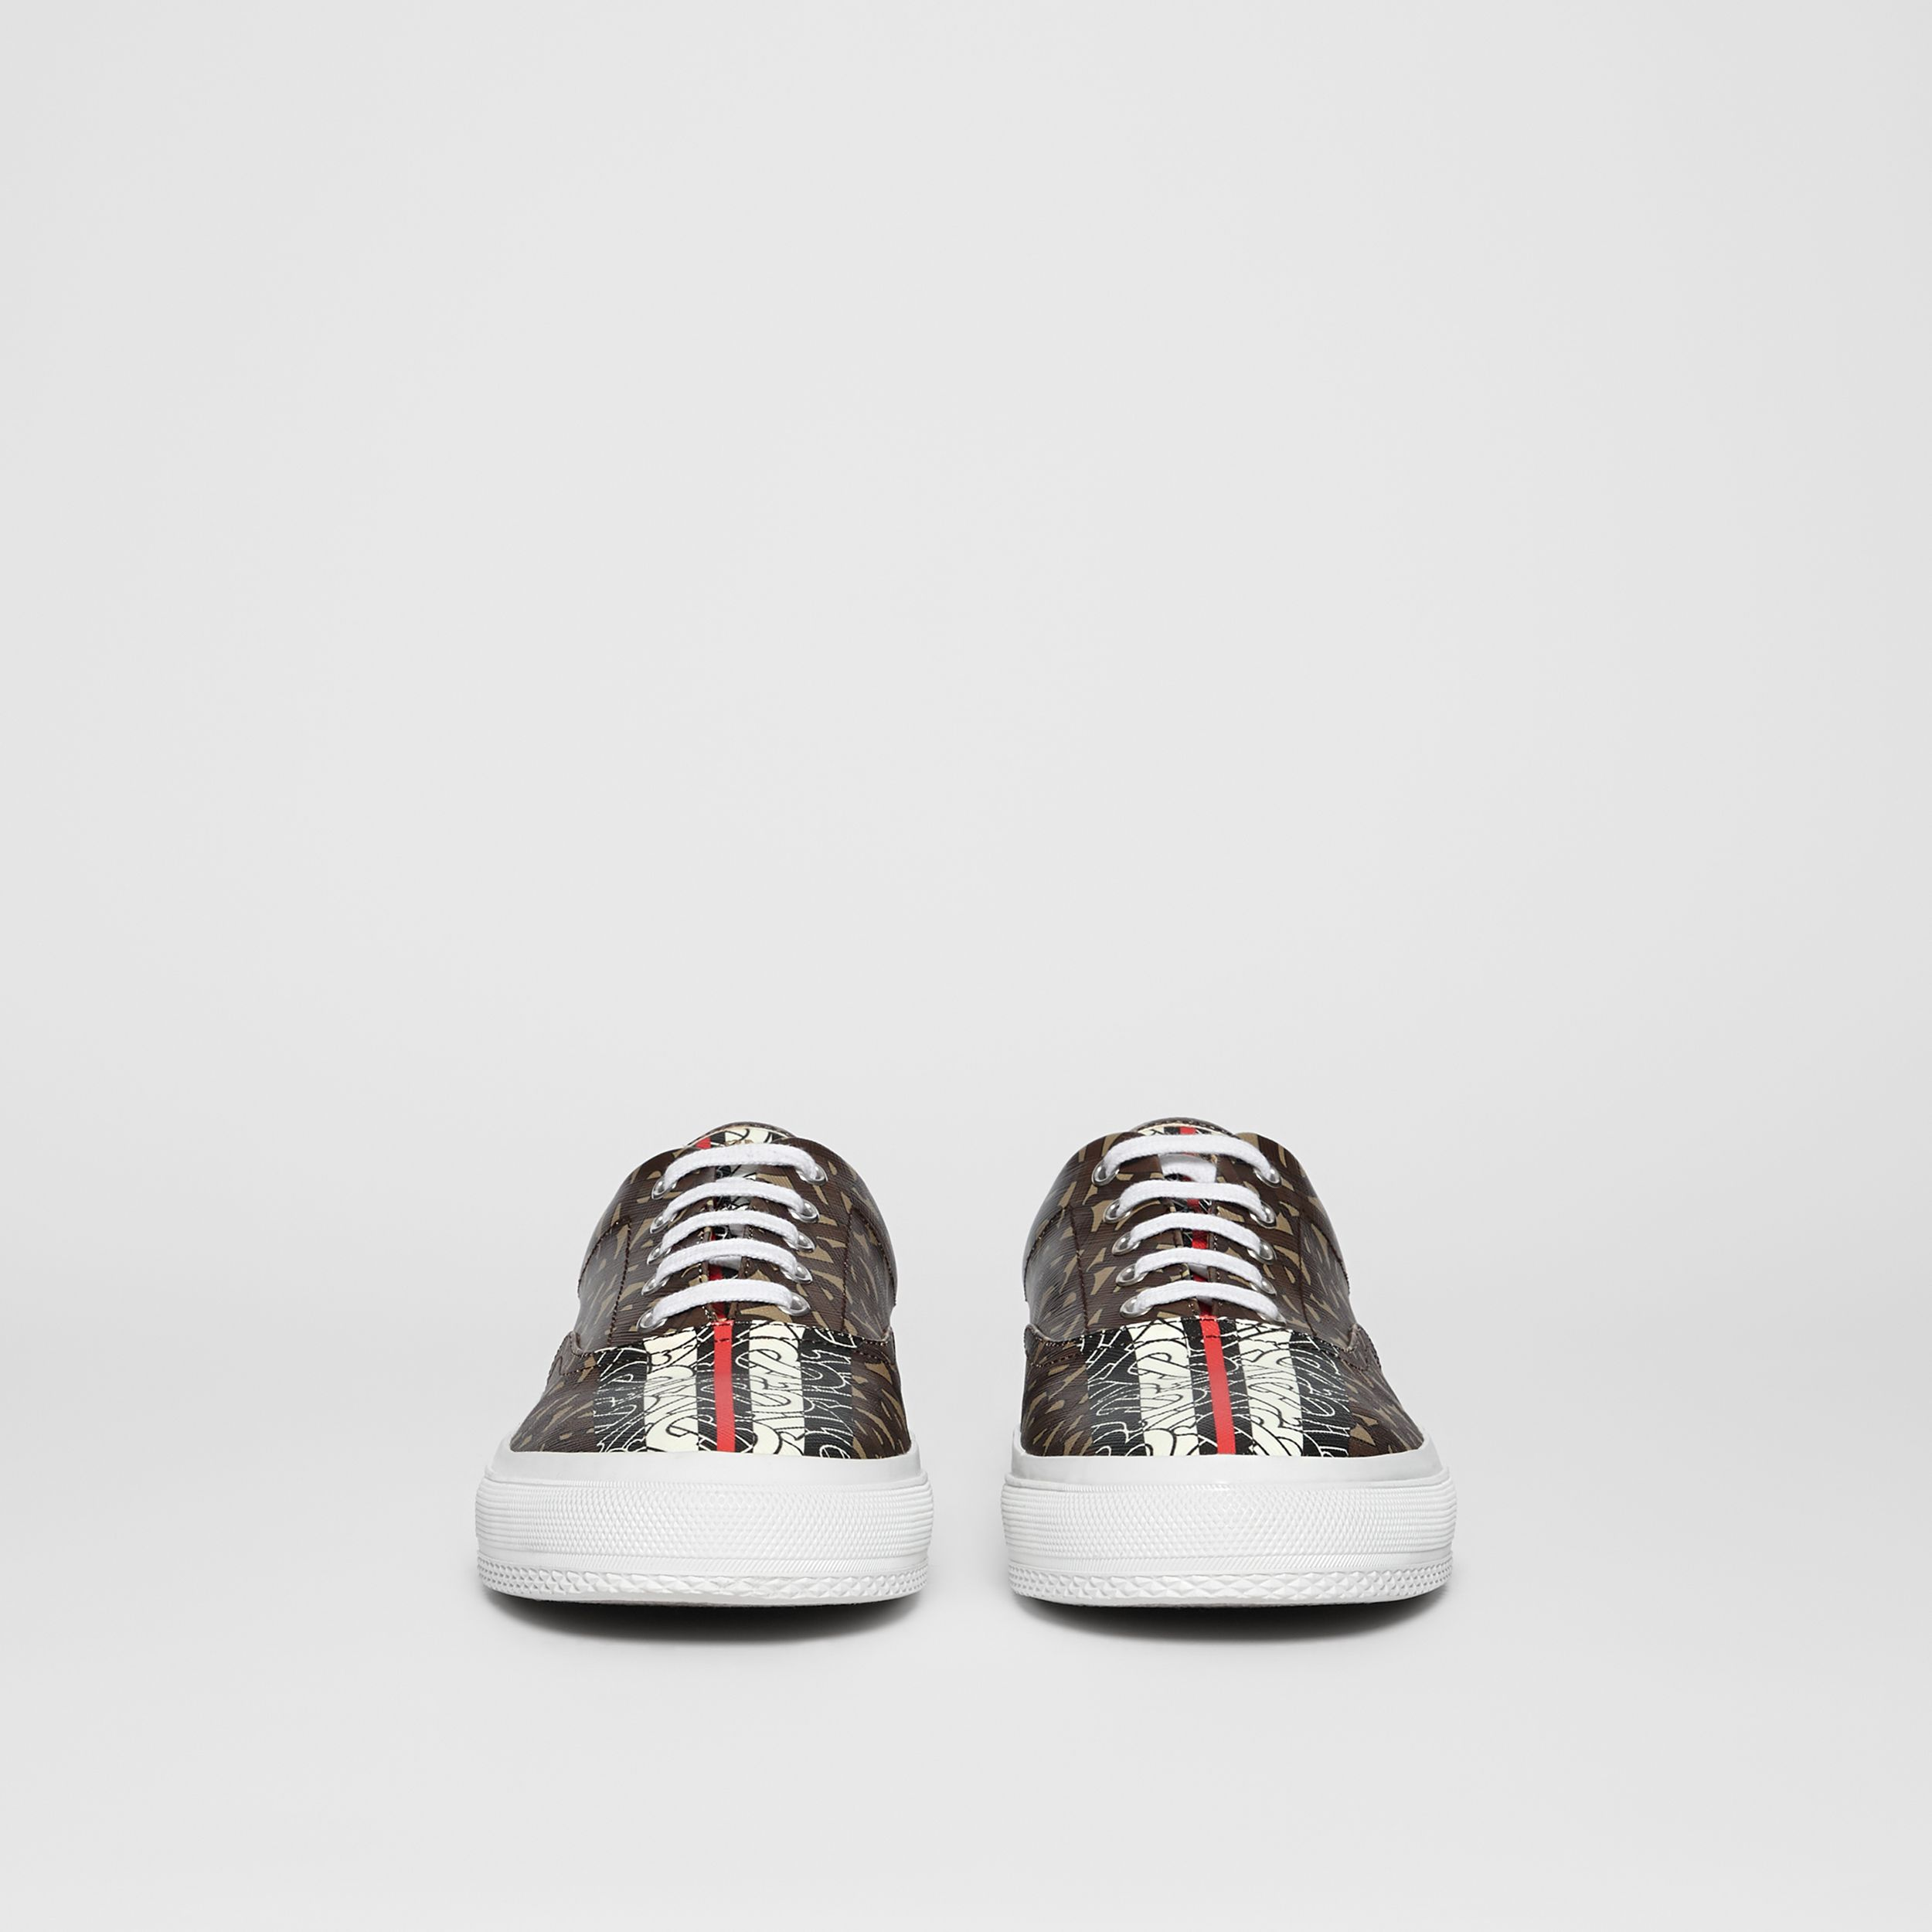 Sneaker in e-canvas con stampa monogramma a righe (Marrone Redini) - Uomo | Burberry - 4